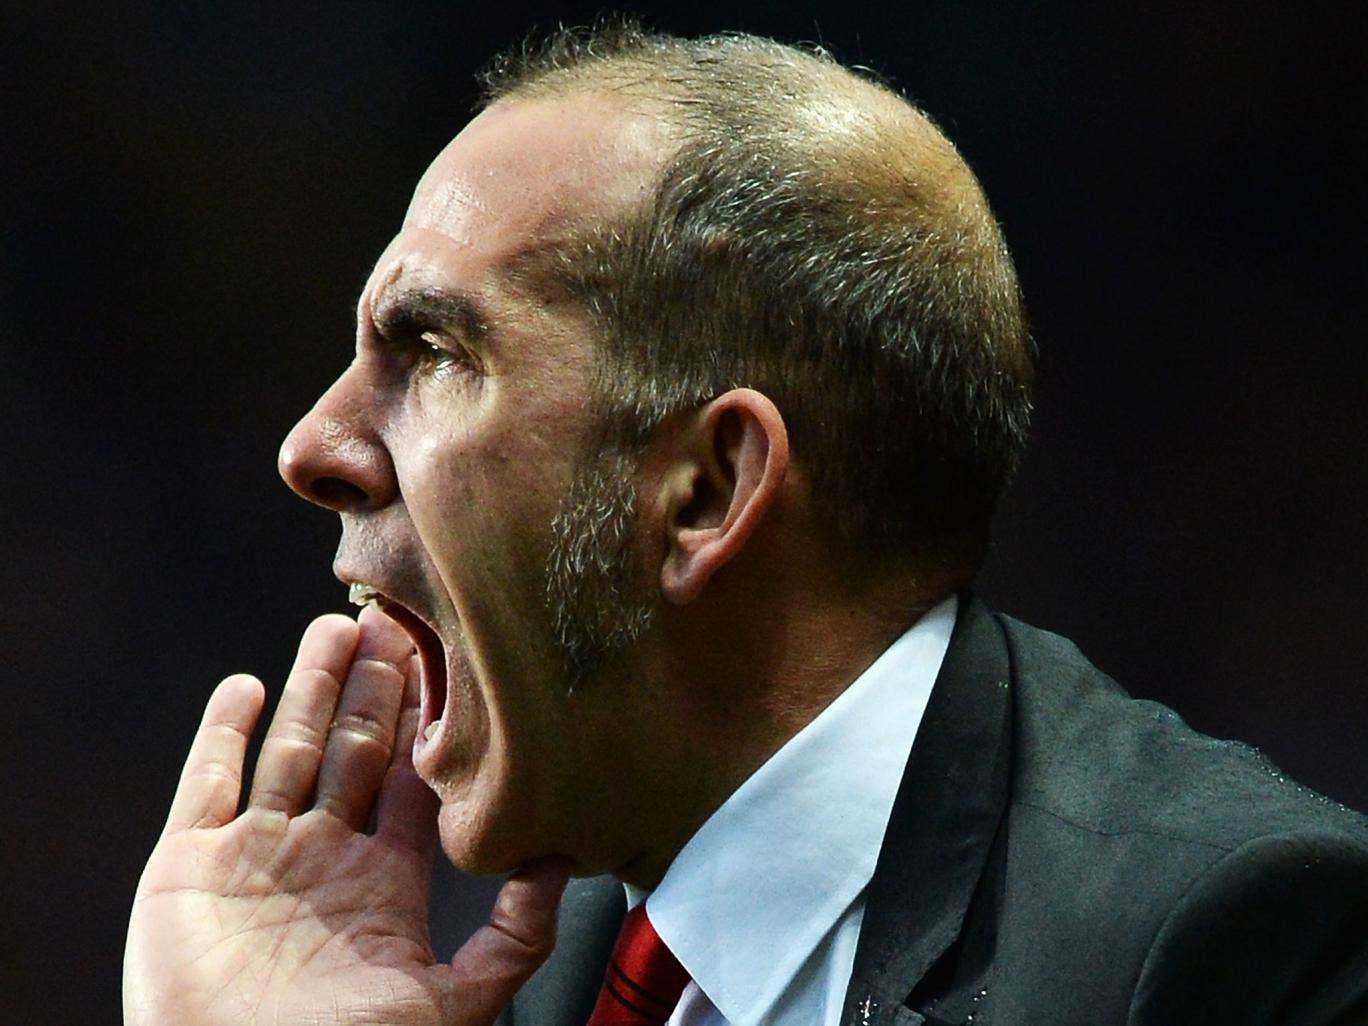 Paolo Di Canio's Sunderland host Stoke tonight in a crucial game for his club